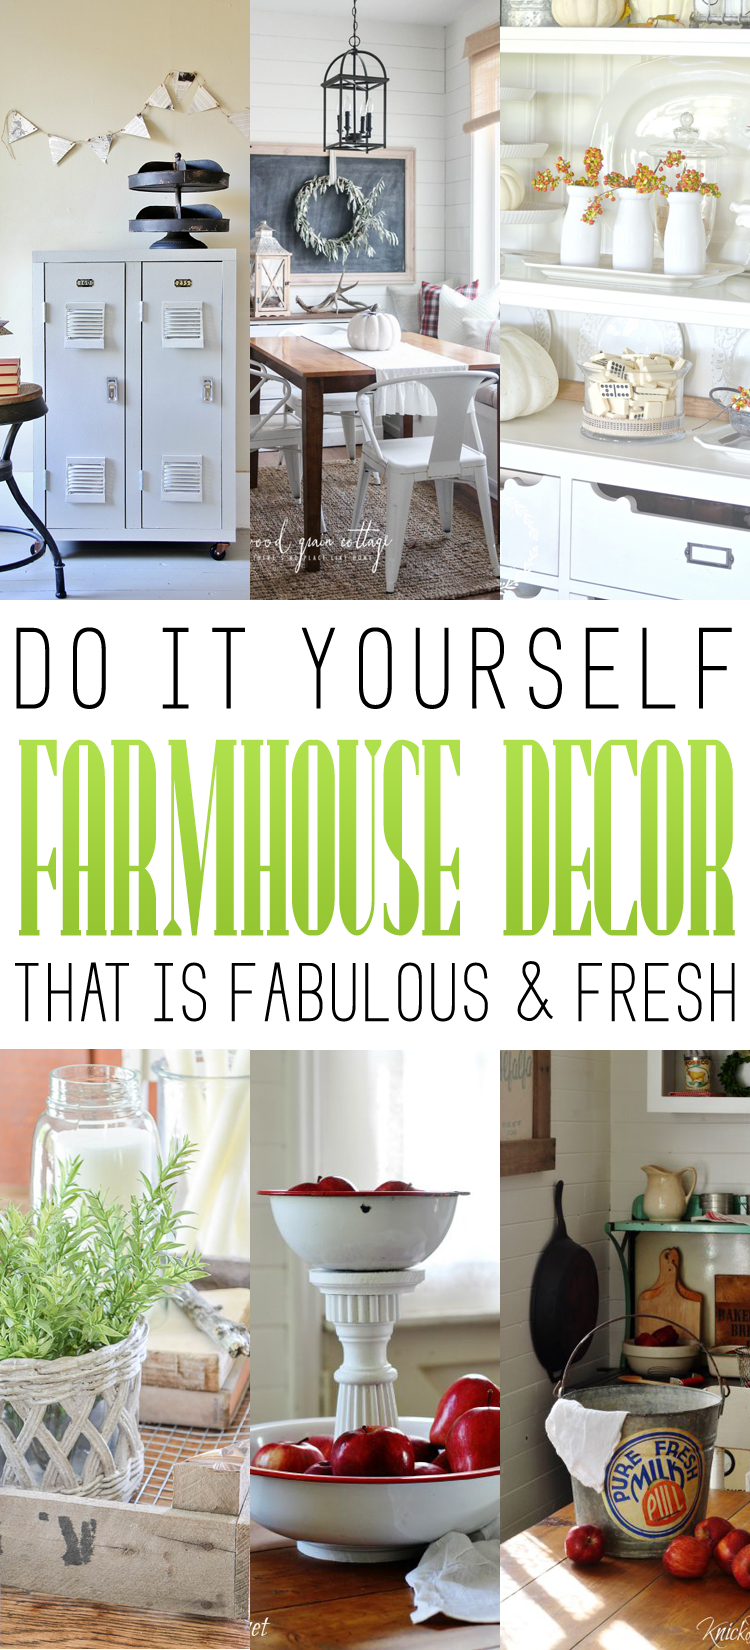 DIY Farmhouse Decor that is fabulous and fresh